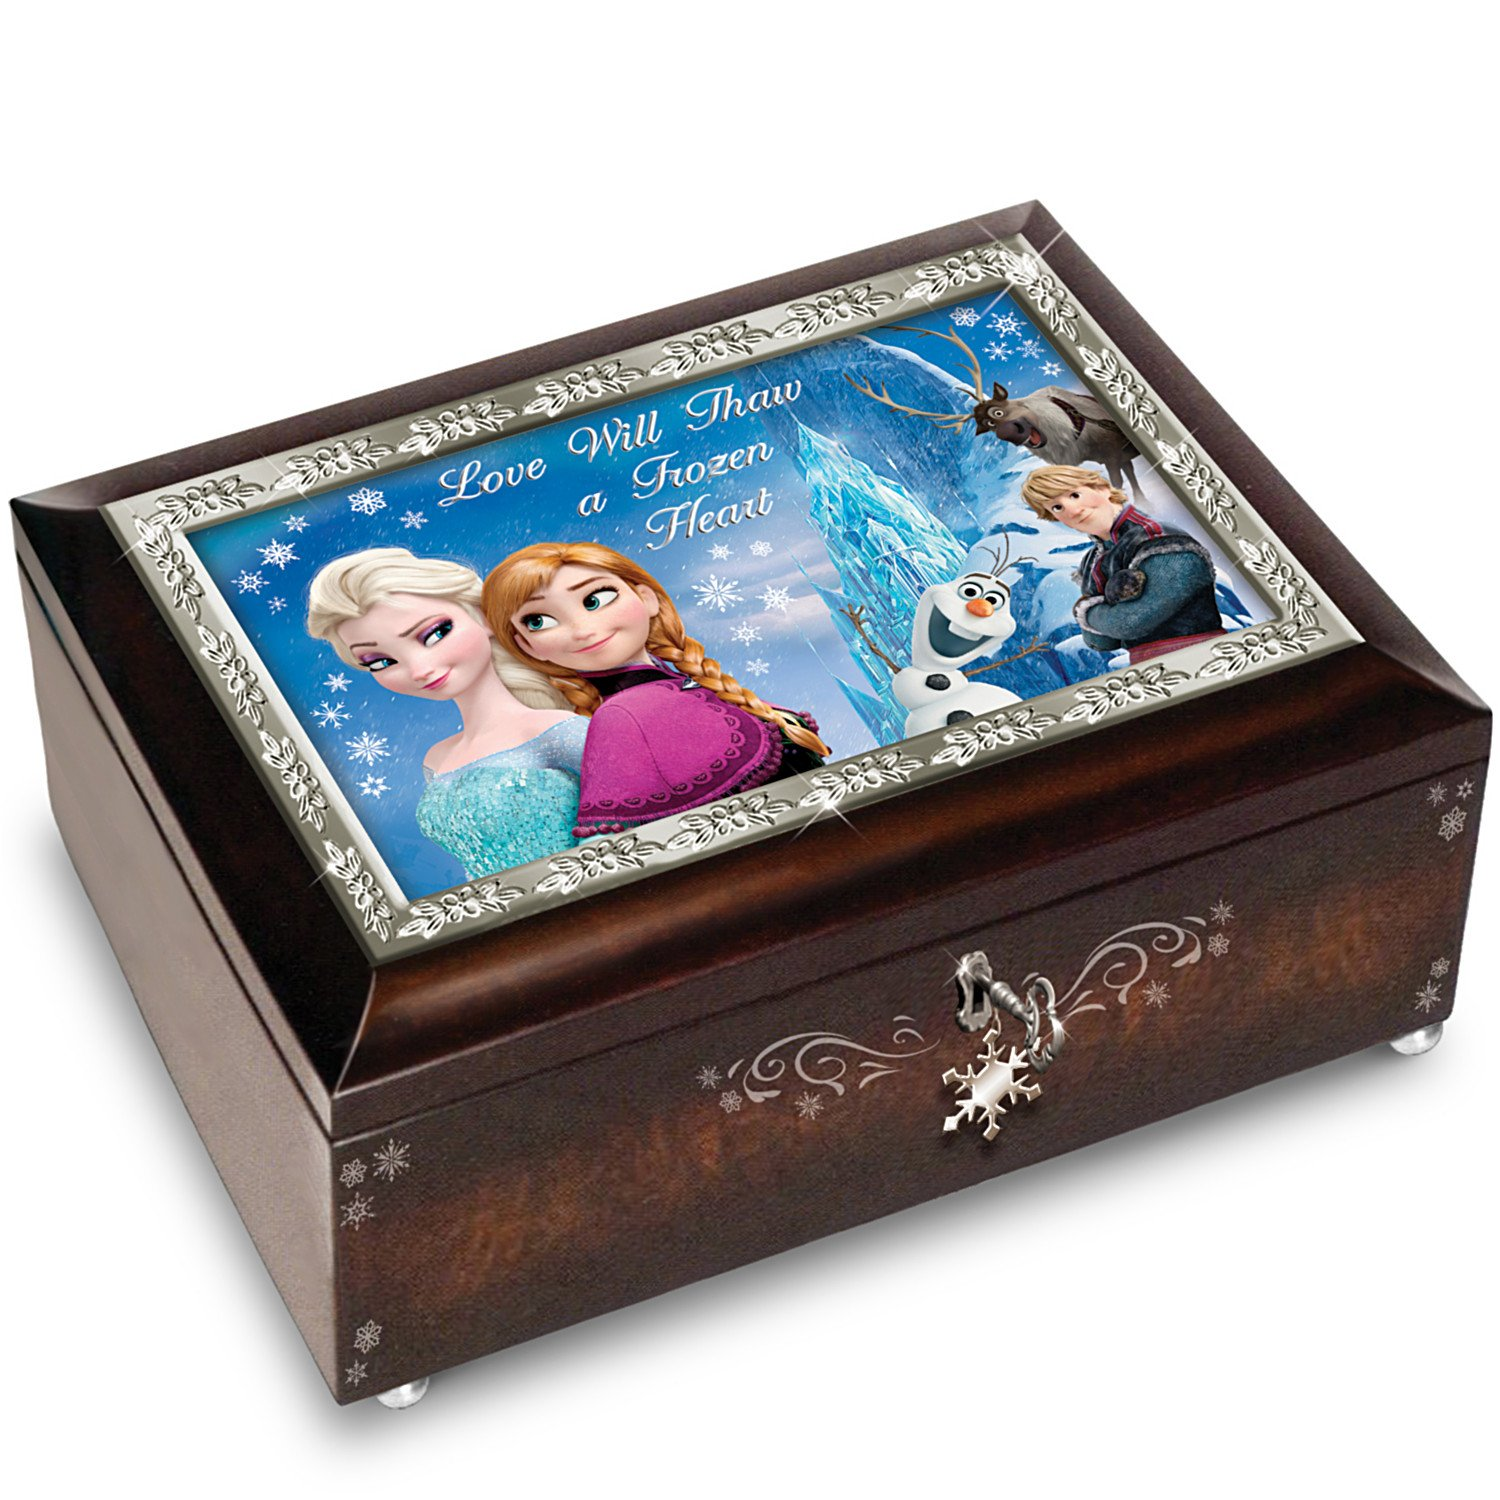 Disney FROZEN Brown Music Box Plays the Melody of